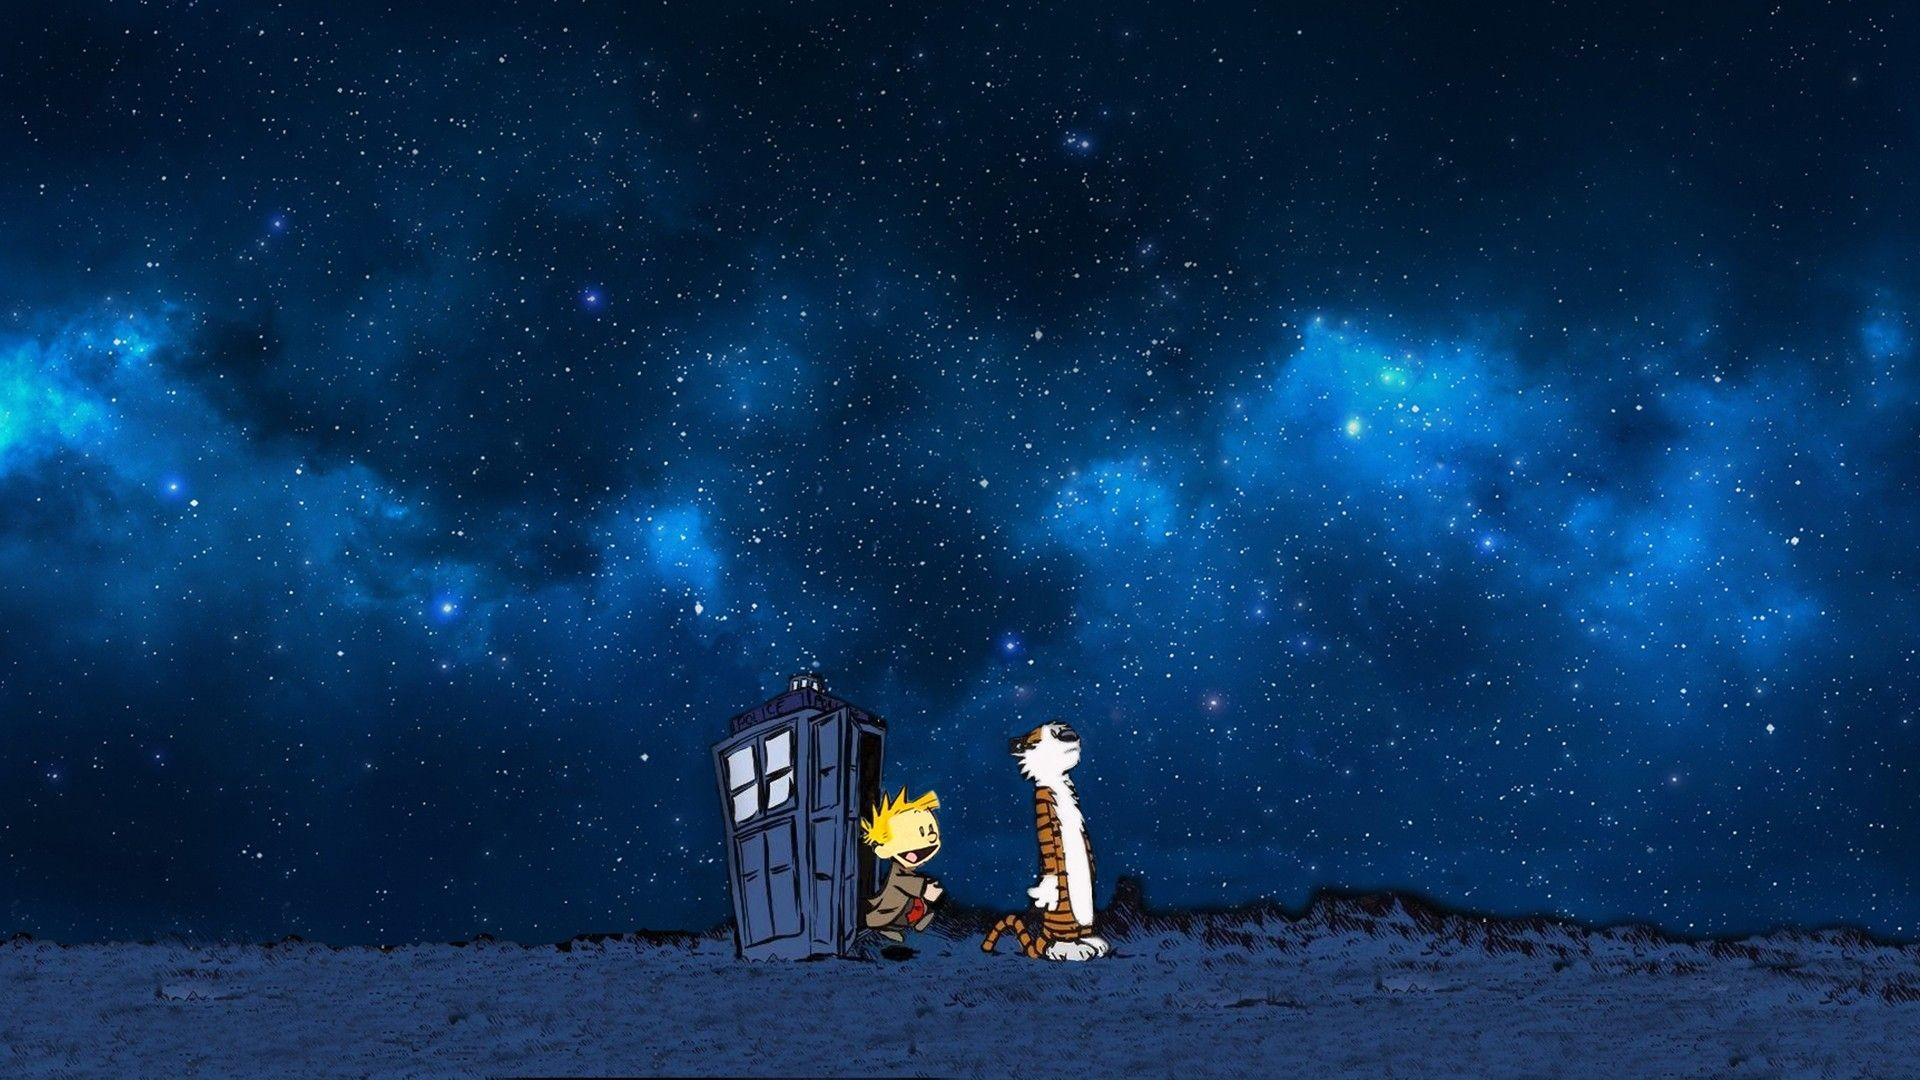 Res: 1920x1080, if you need a wallpaper of Calvin and Hobbes using the TARDIS, I've